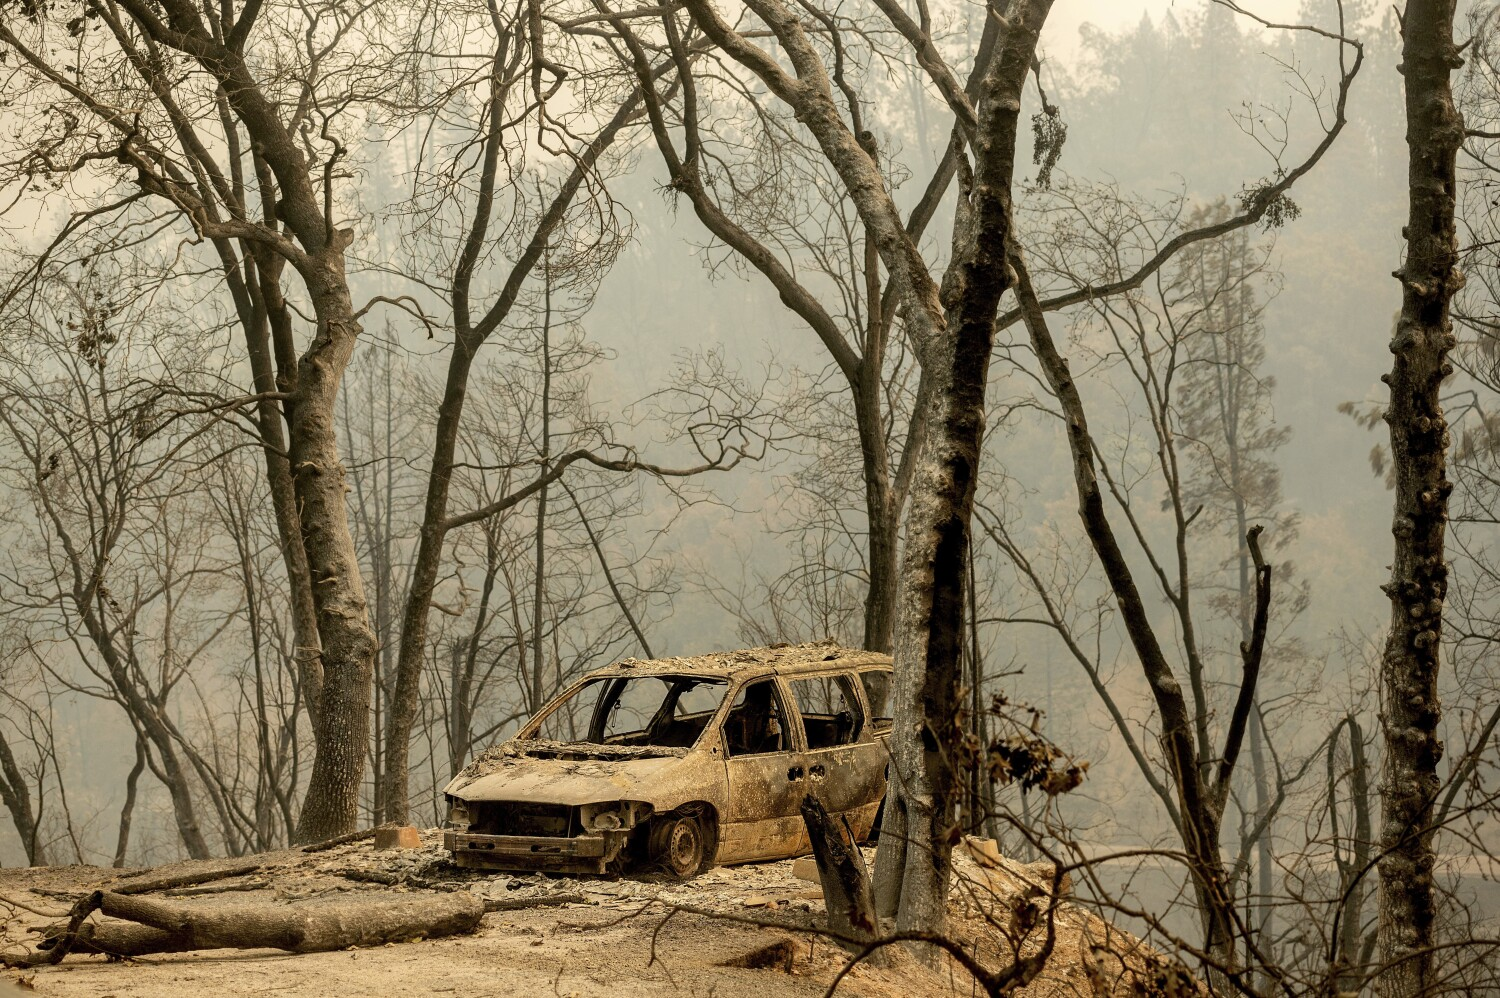 He had 10 minutes to flee the Salt fire. Now his home is gone